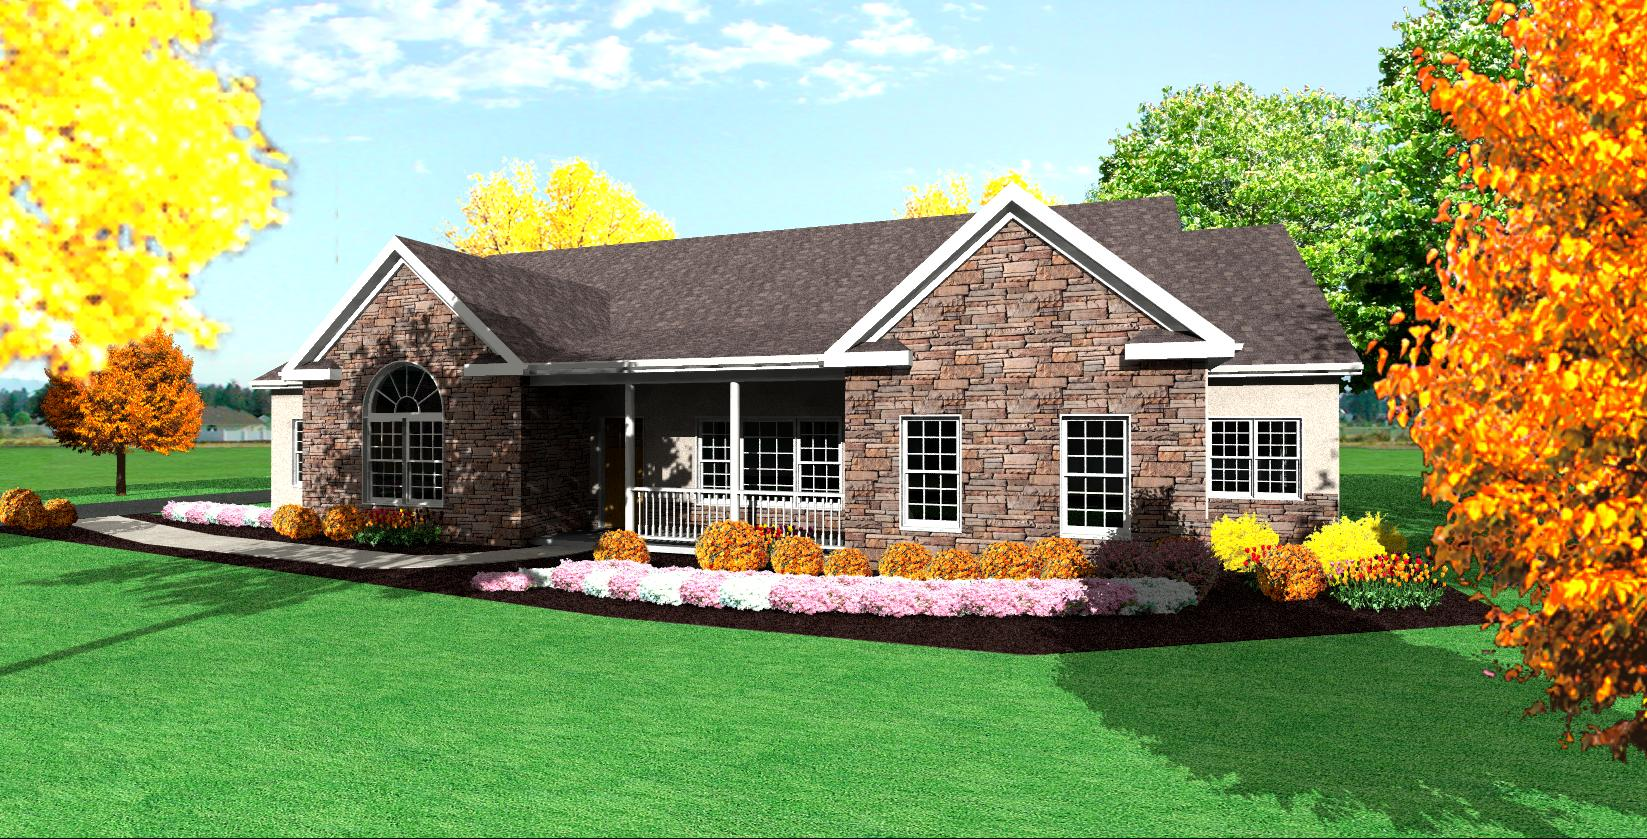 Traditional ranch house plan single level one story ranch for Small ranch style house